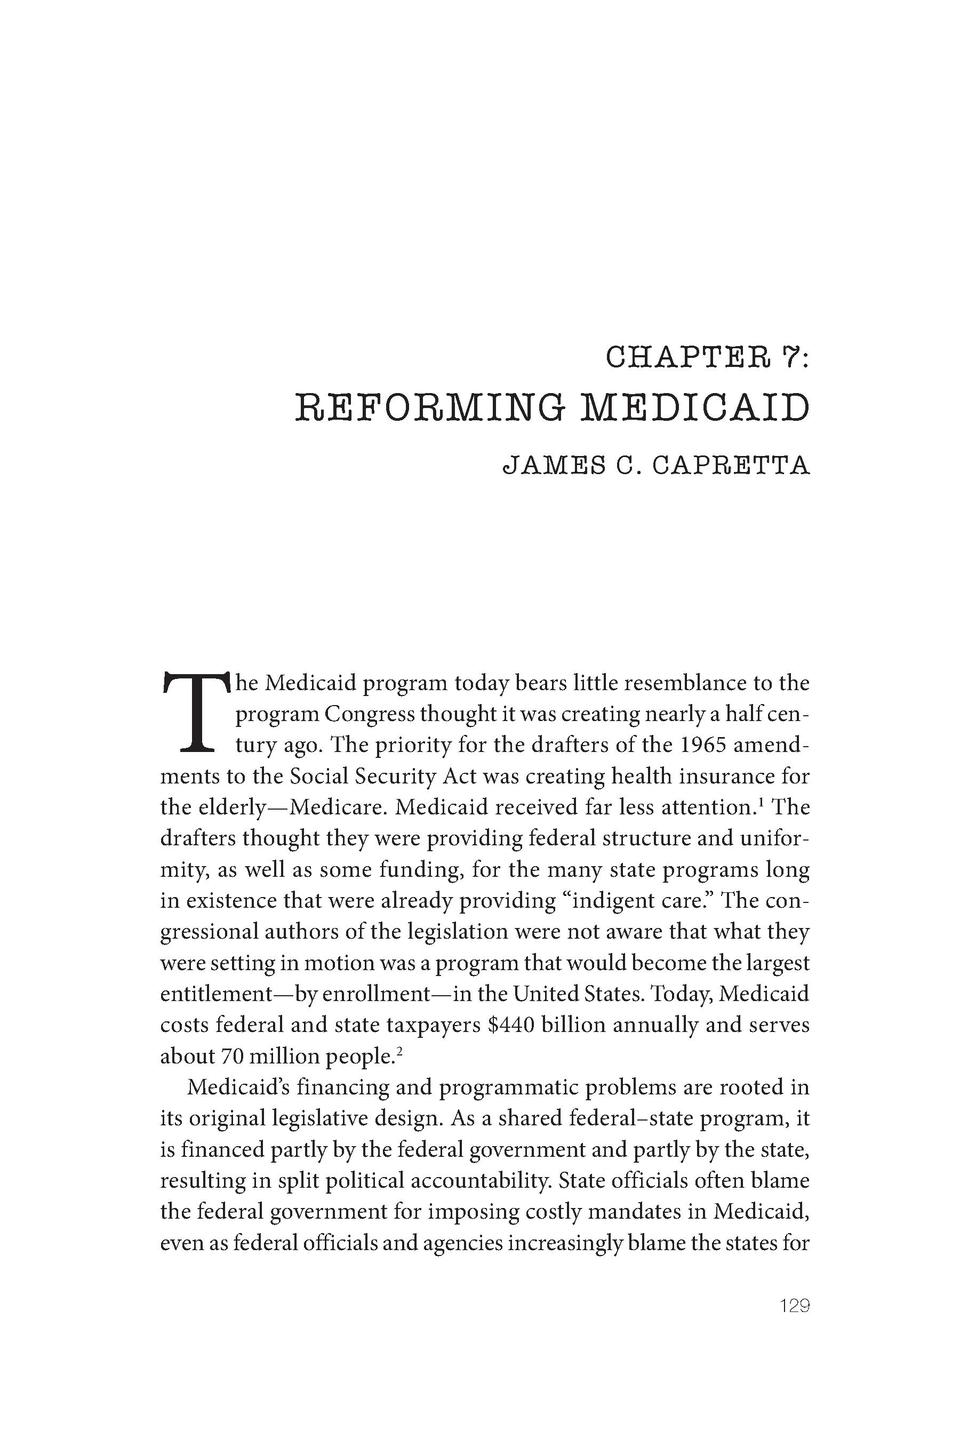 CHAPTER 7   REFORMING MEDICAID JAMES C. CAPRETTA  T  he Medicaid program today bears little resemblance to the program Con...